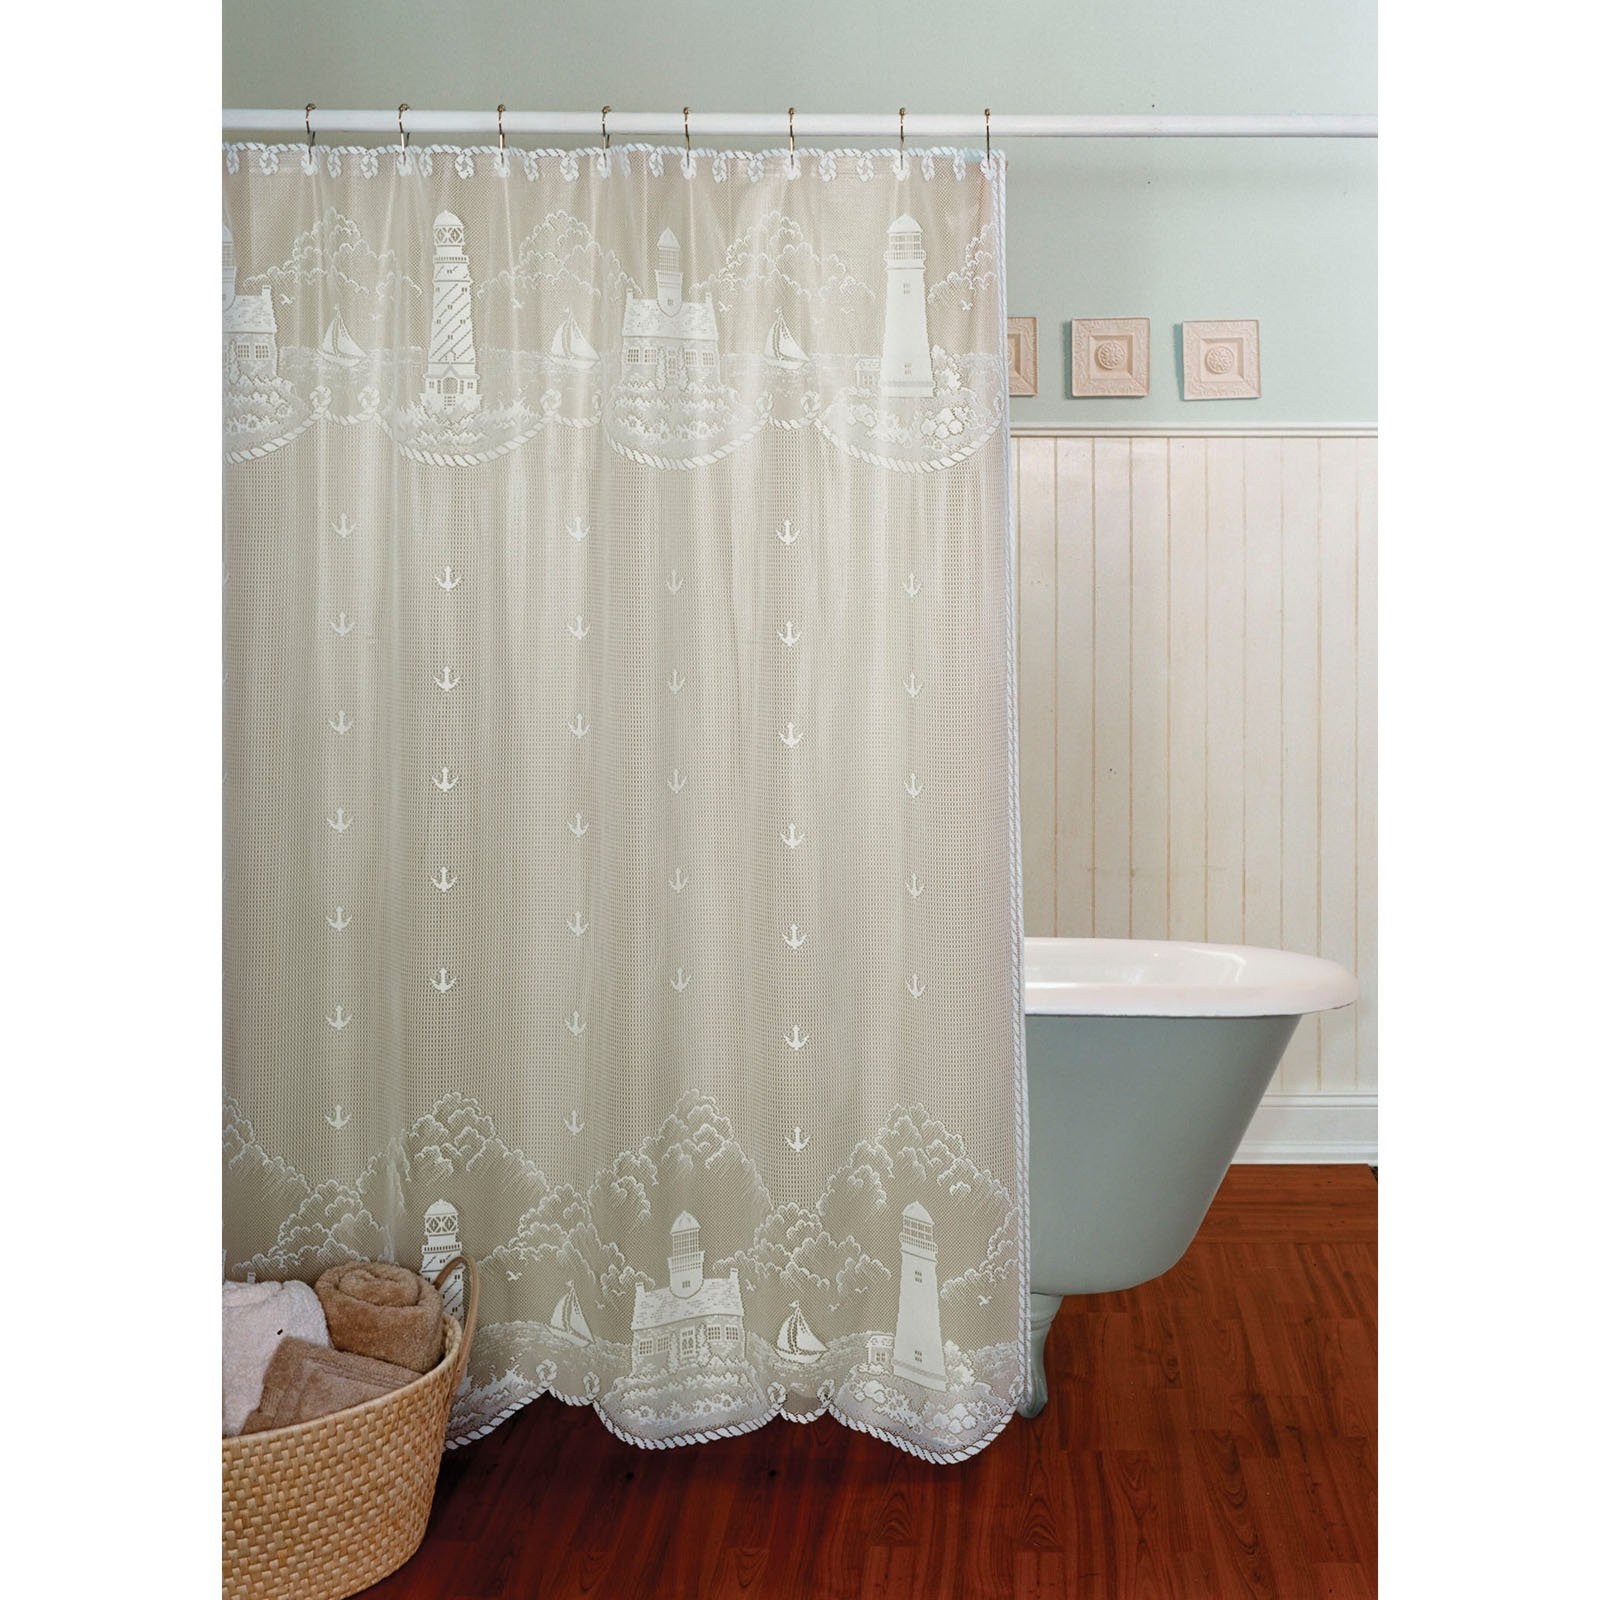 Decor Awesome Curtain Rods Bed Bath And Beyond For Minimalist With Regard To Nautical Curtain Rods (View 25 of 25)